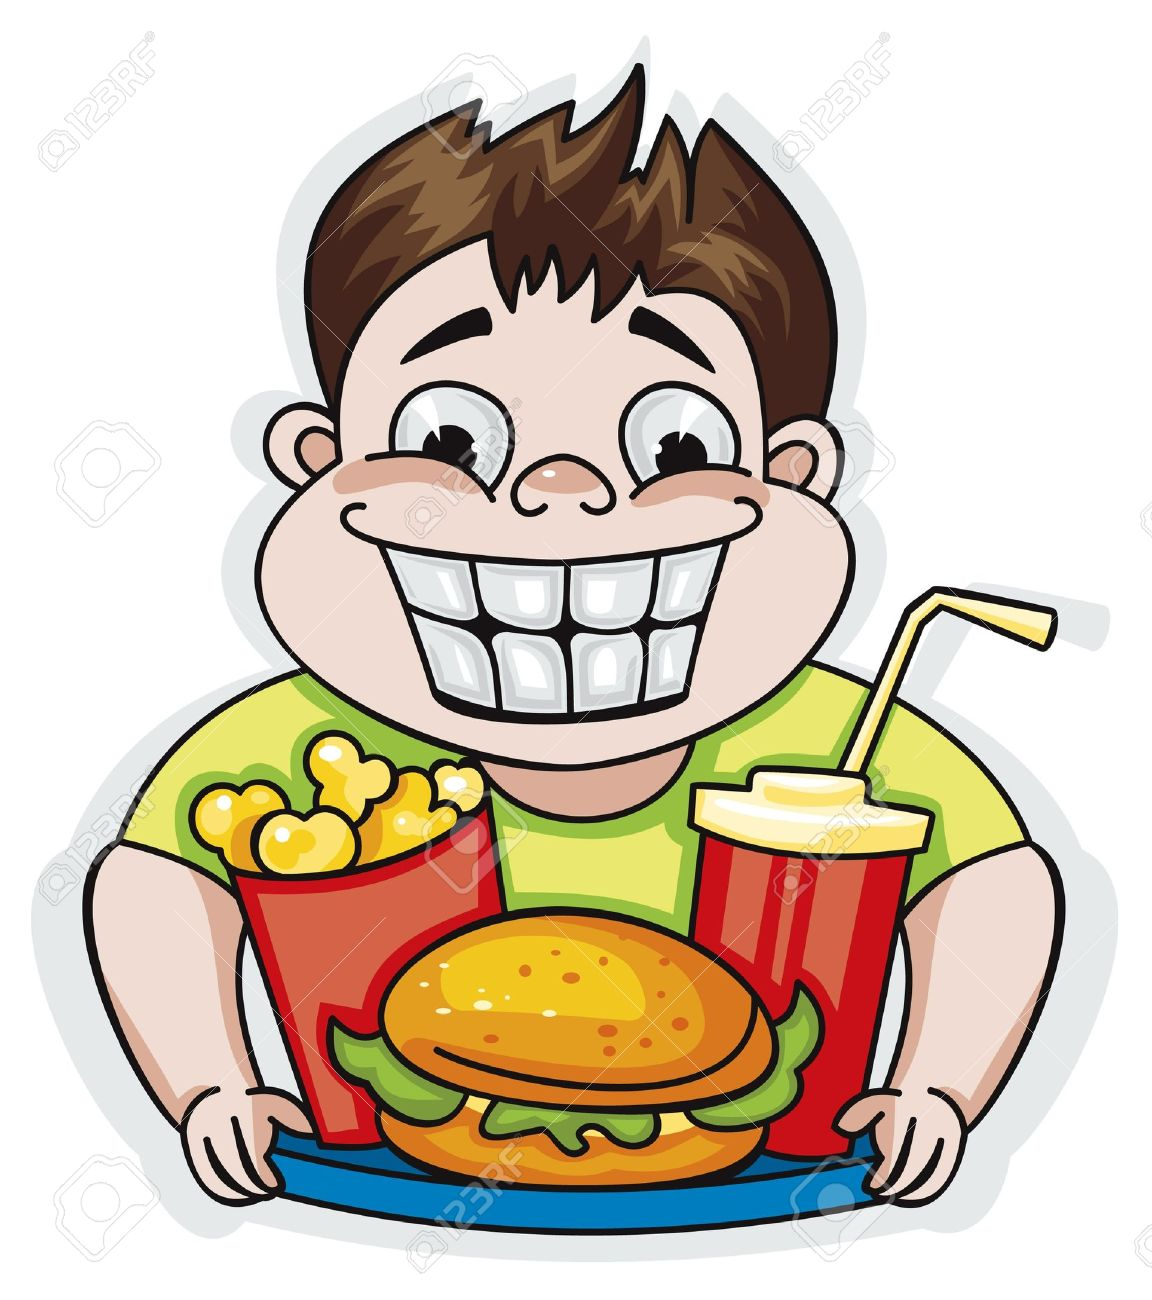 man eating burger clipart - Clipground